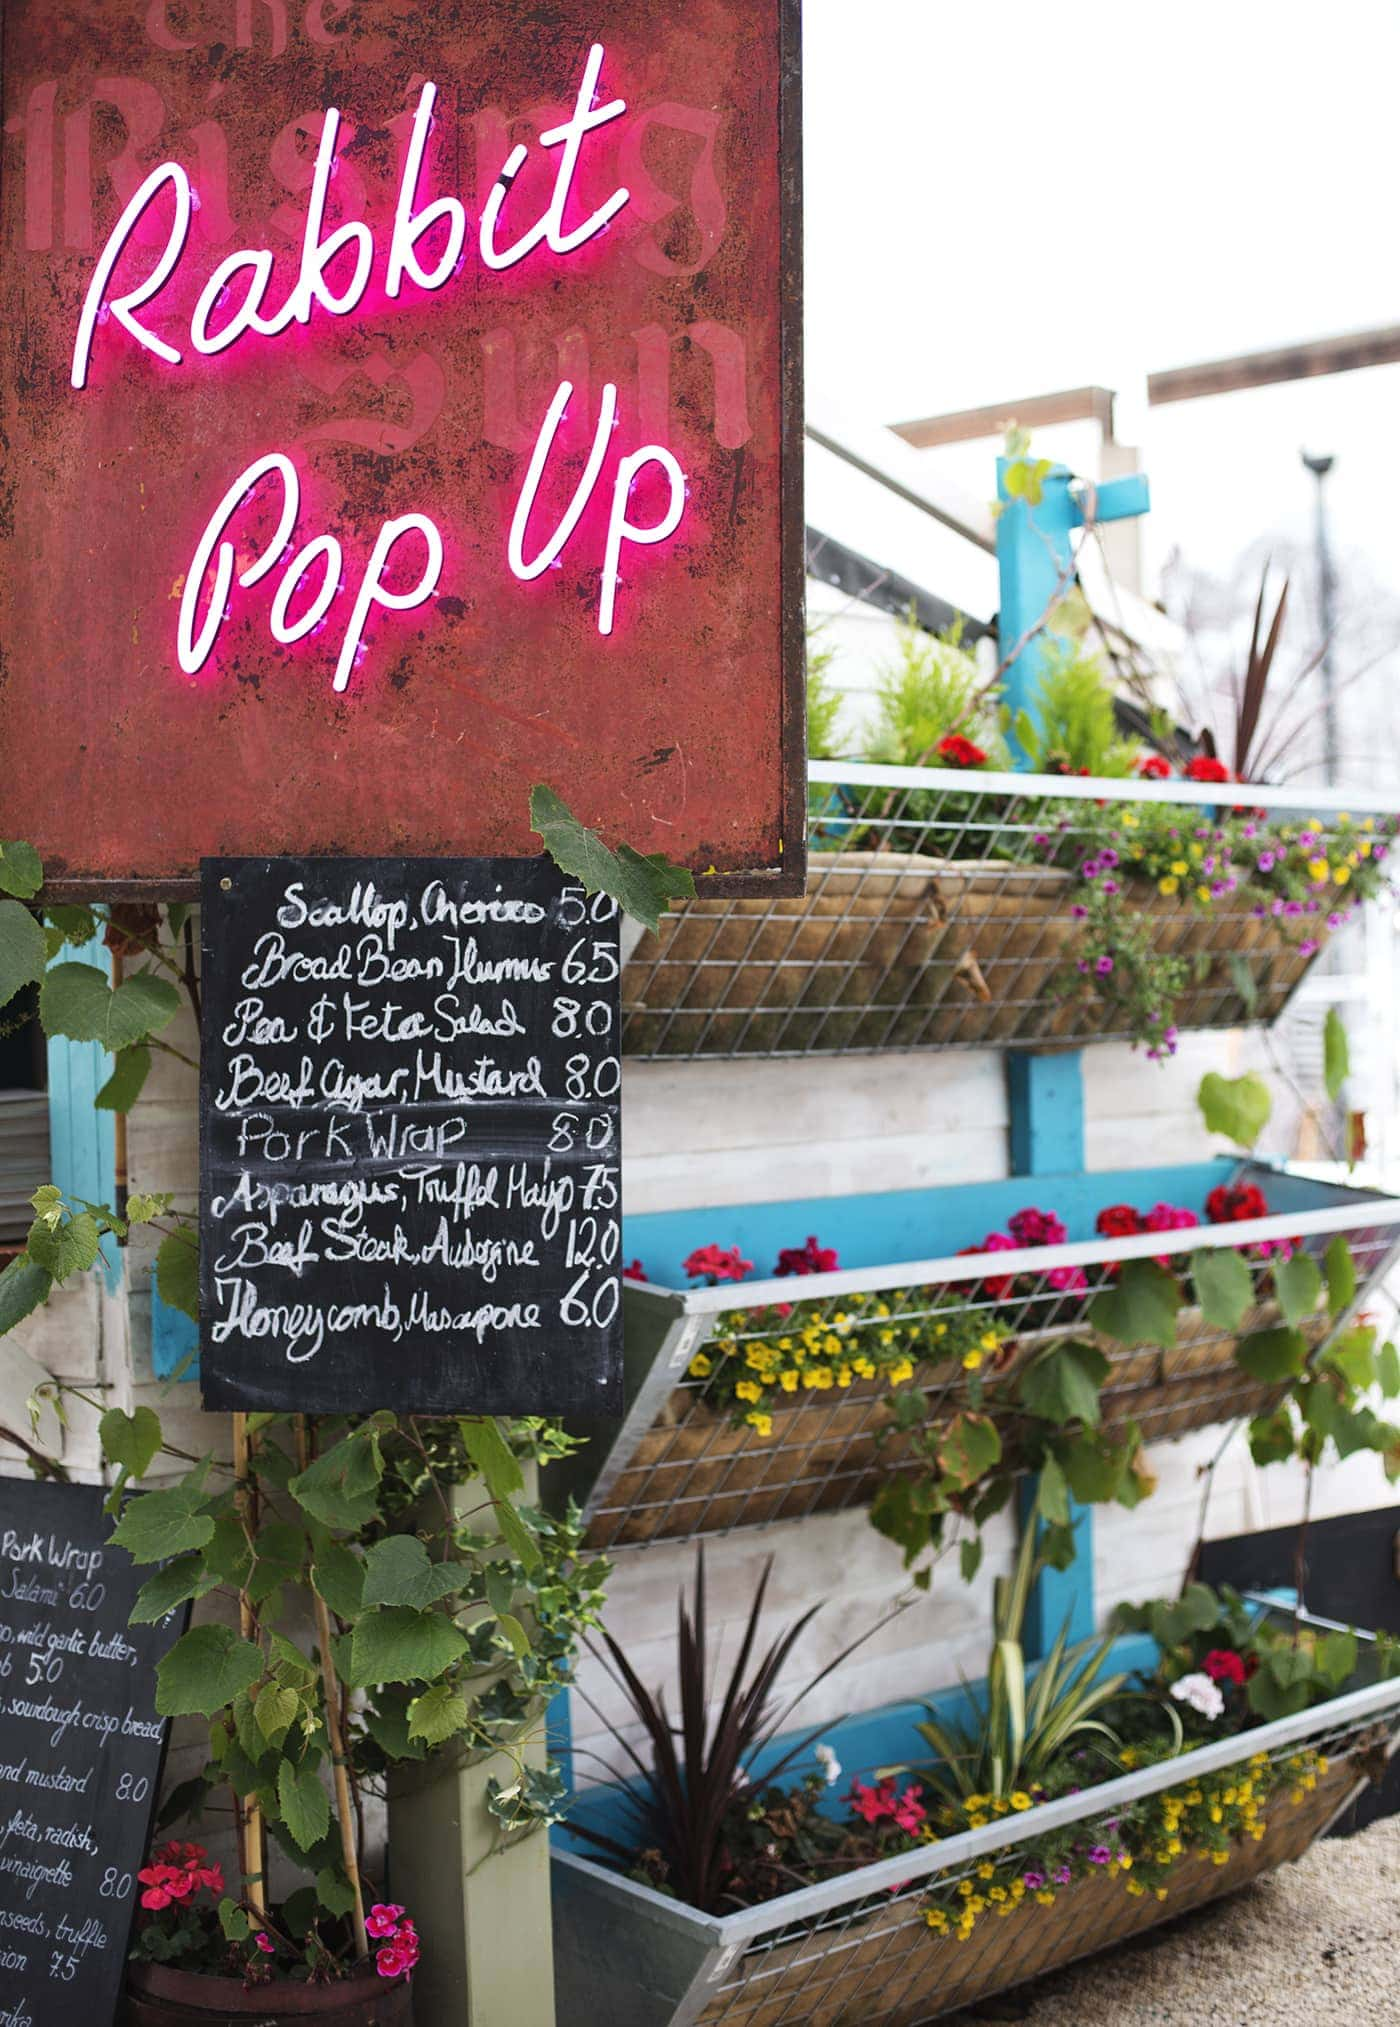 Birthday fun day | Pergola on the roof | Rabbit pop up